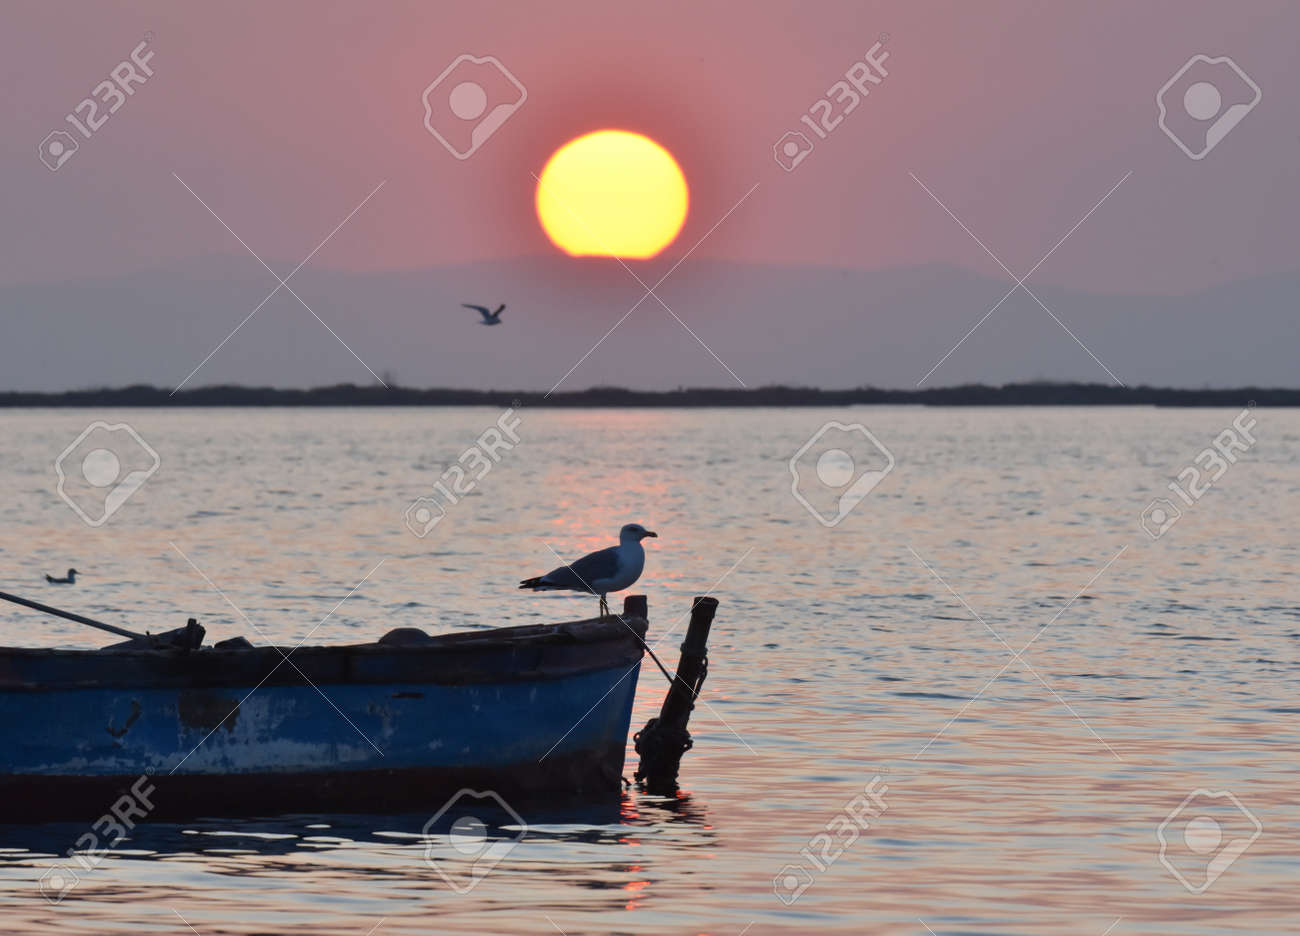 Seagull standing on a boat at sunset - 165265035